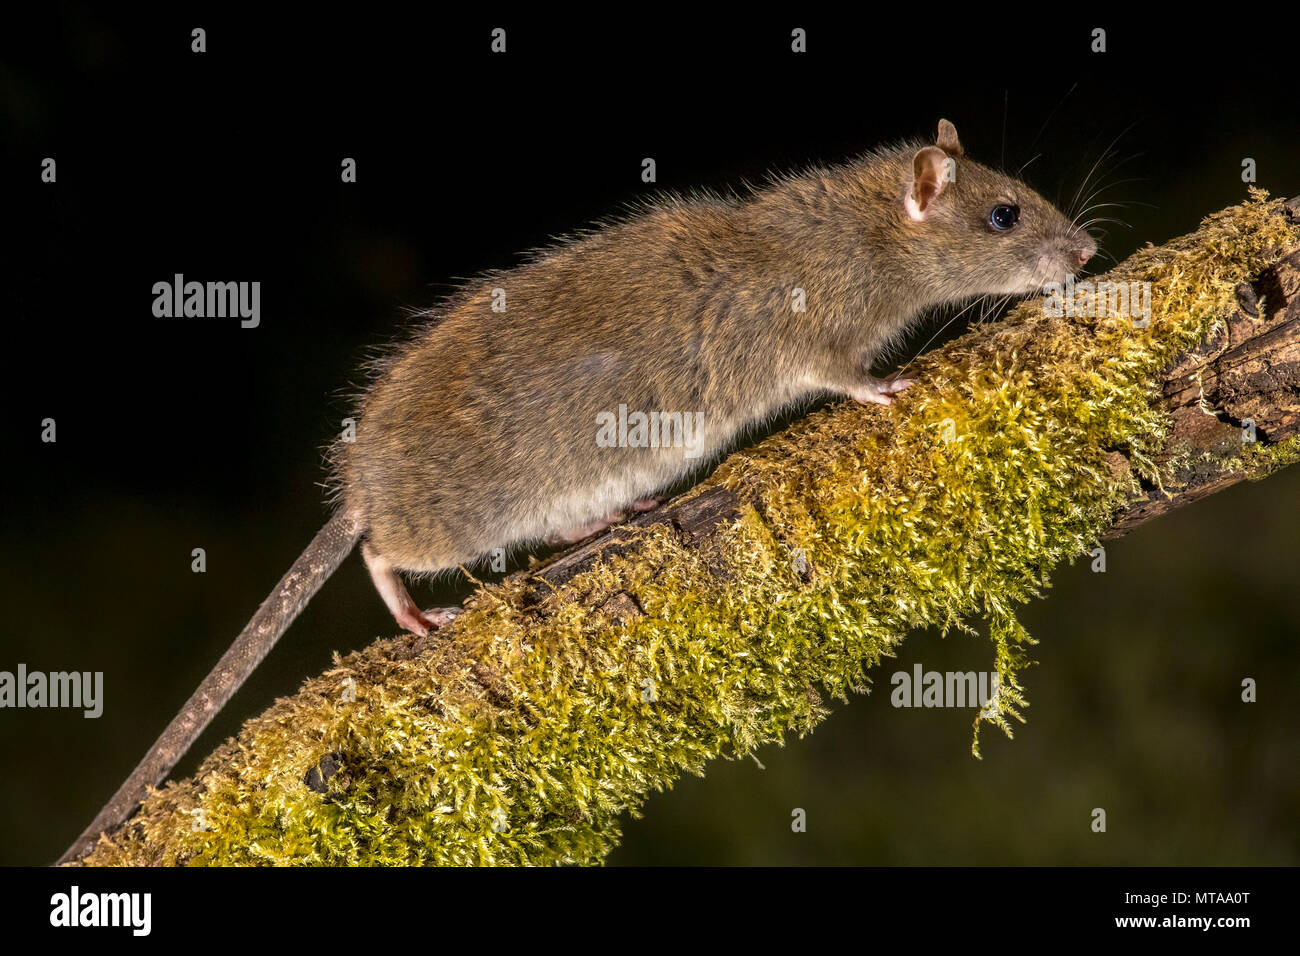 Wild Brown rat (Rattus norvegicus) turning on mossy branch at night. High speed photography image - Stock Image